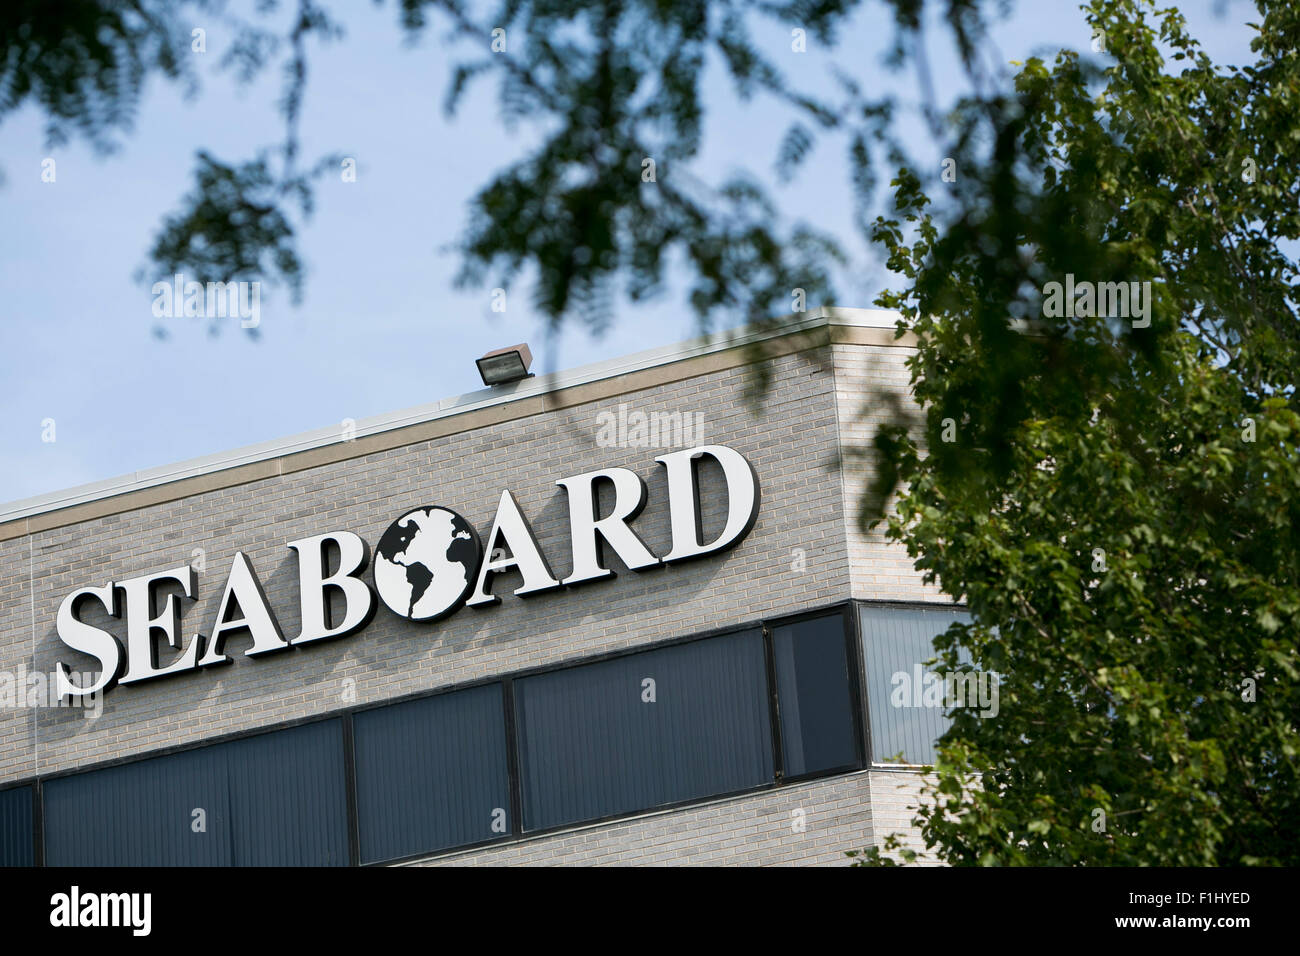 A logo sign outside the headquarters of the Seaboard Corporation in Merriam, Kansas on August 23, 2015. - Stock Image